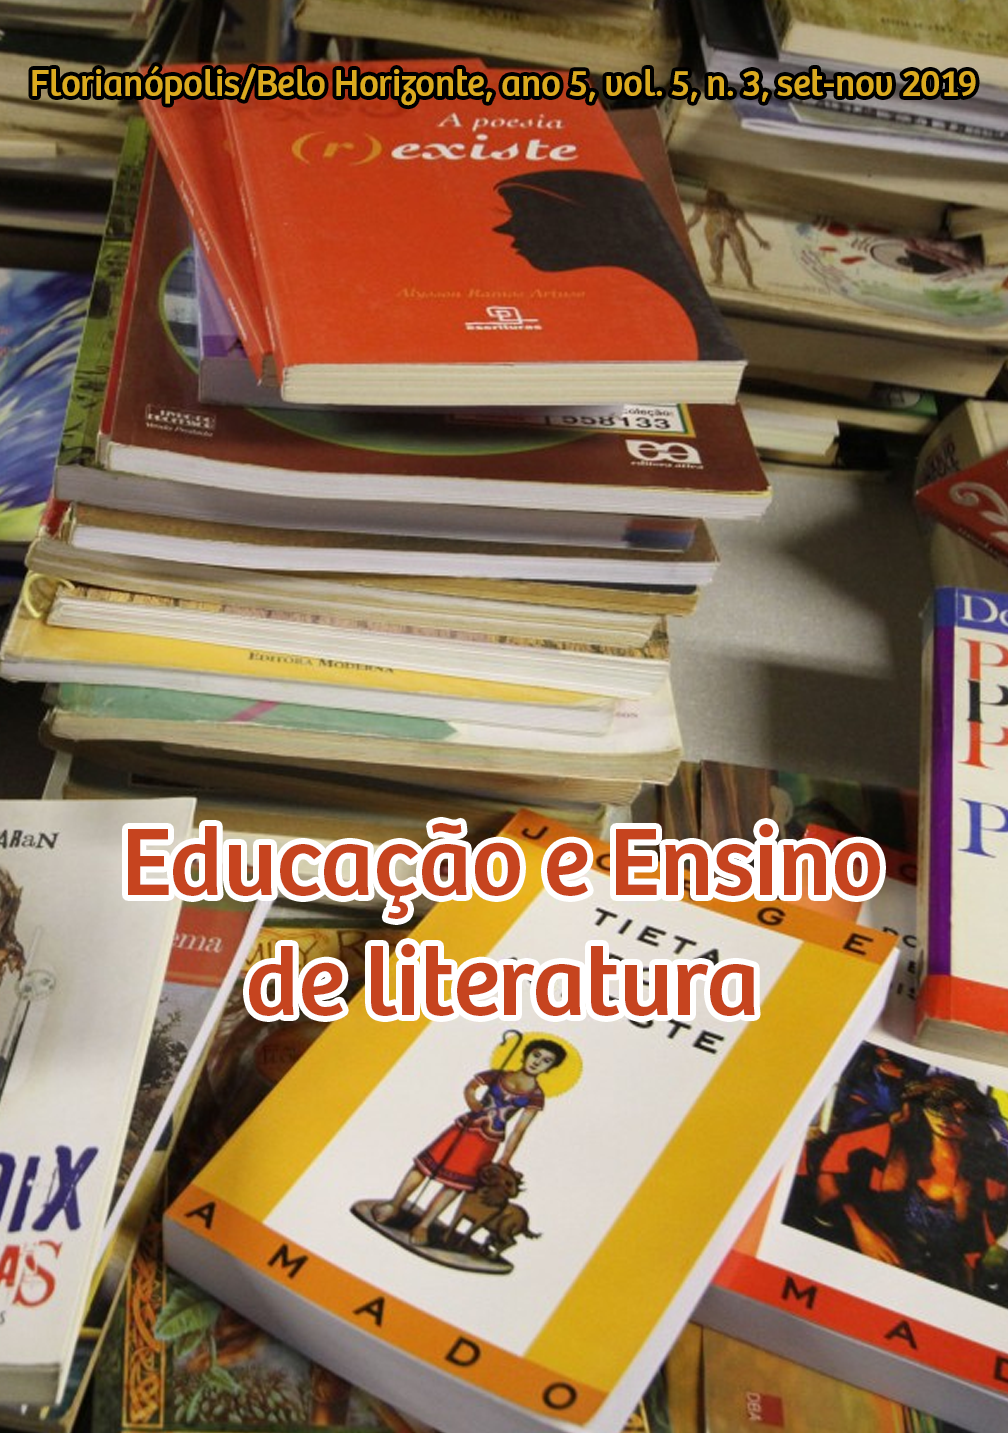 Ensino de literatura, ano-5.-vol.-5-n.-3-set-nov-2019